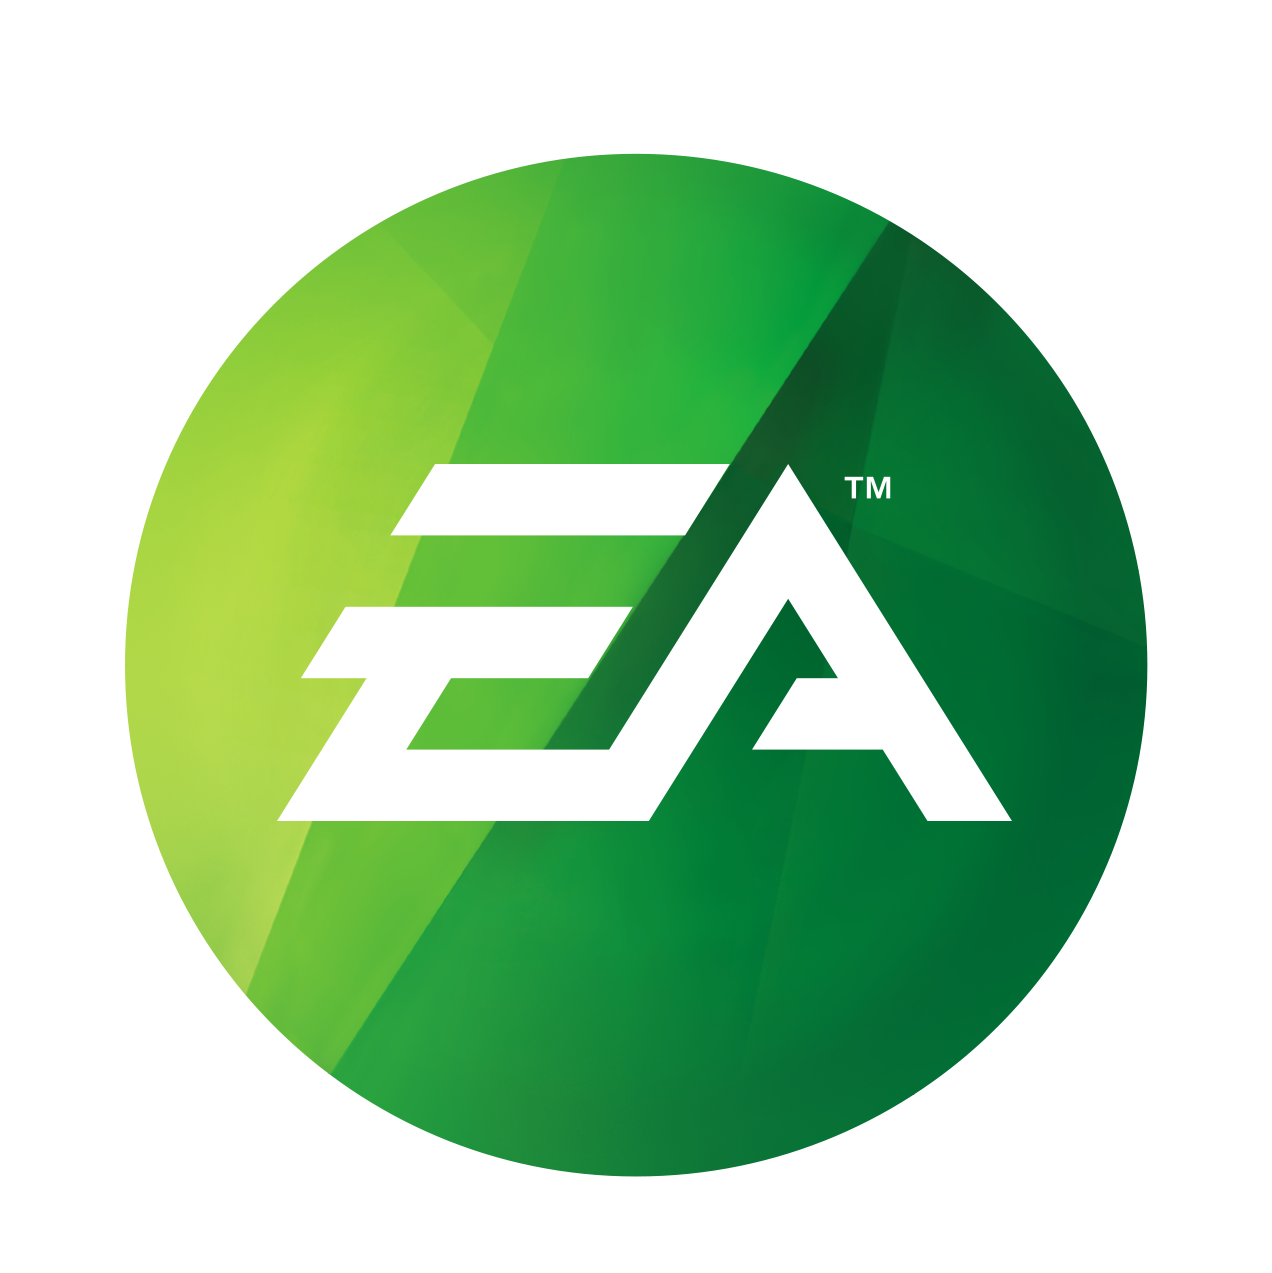 Ea games png. Image logo ichc channel